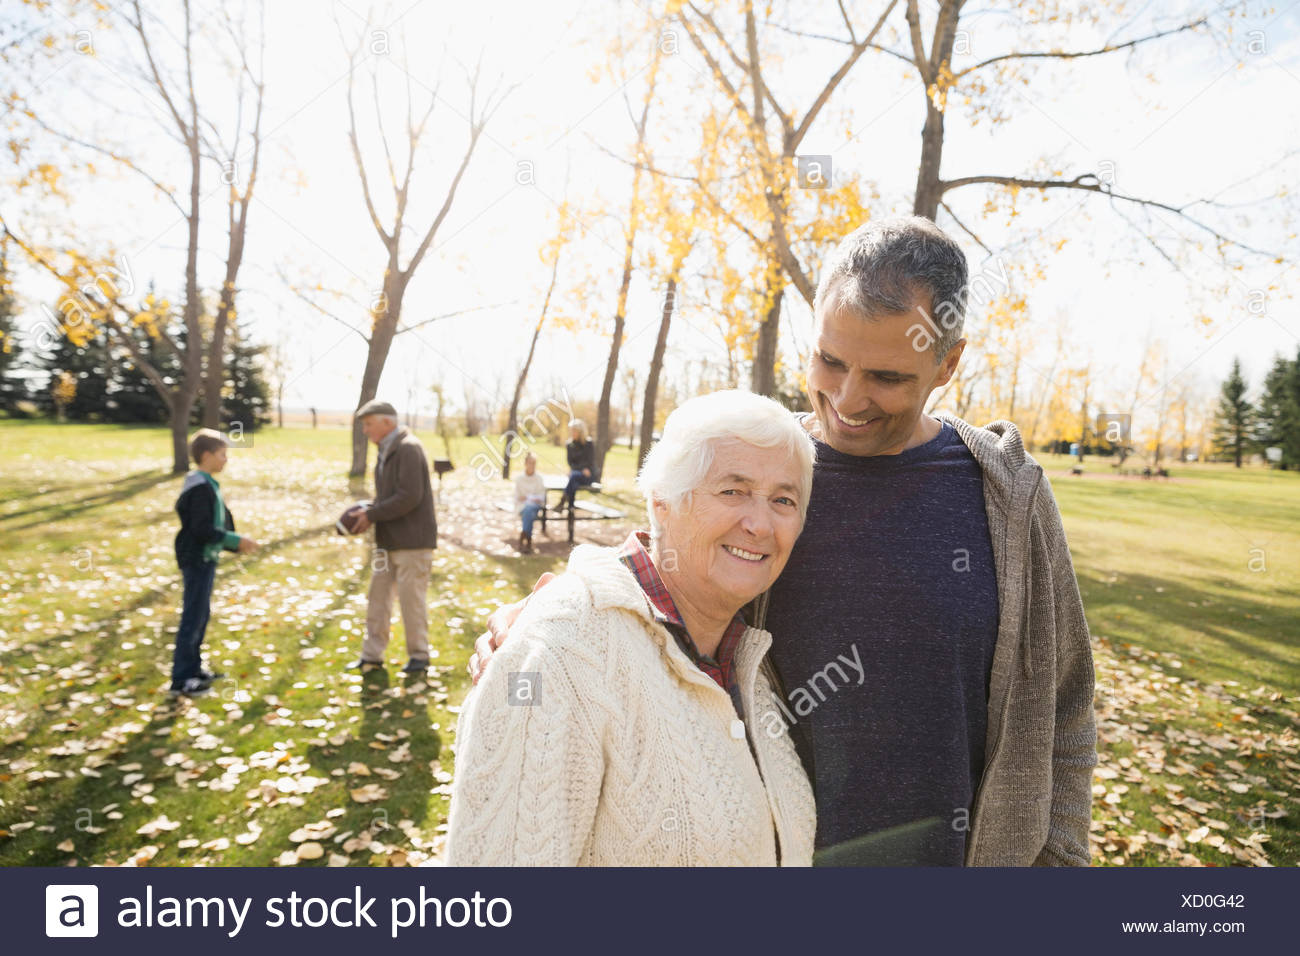 Portrait smiling mother and son in sunny autumn park - Stock Image